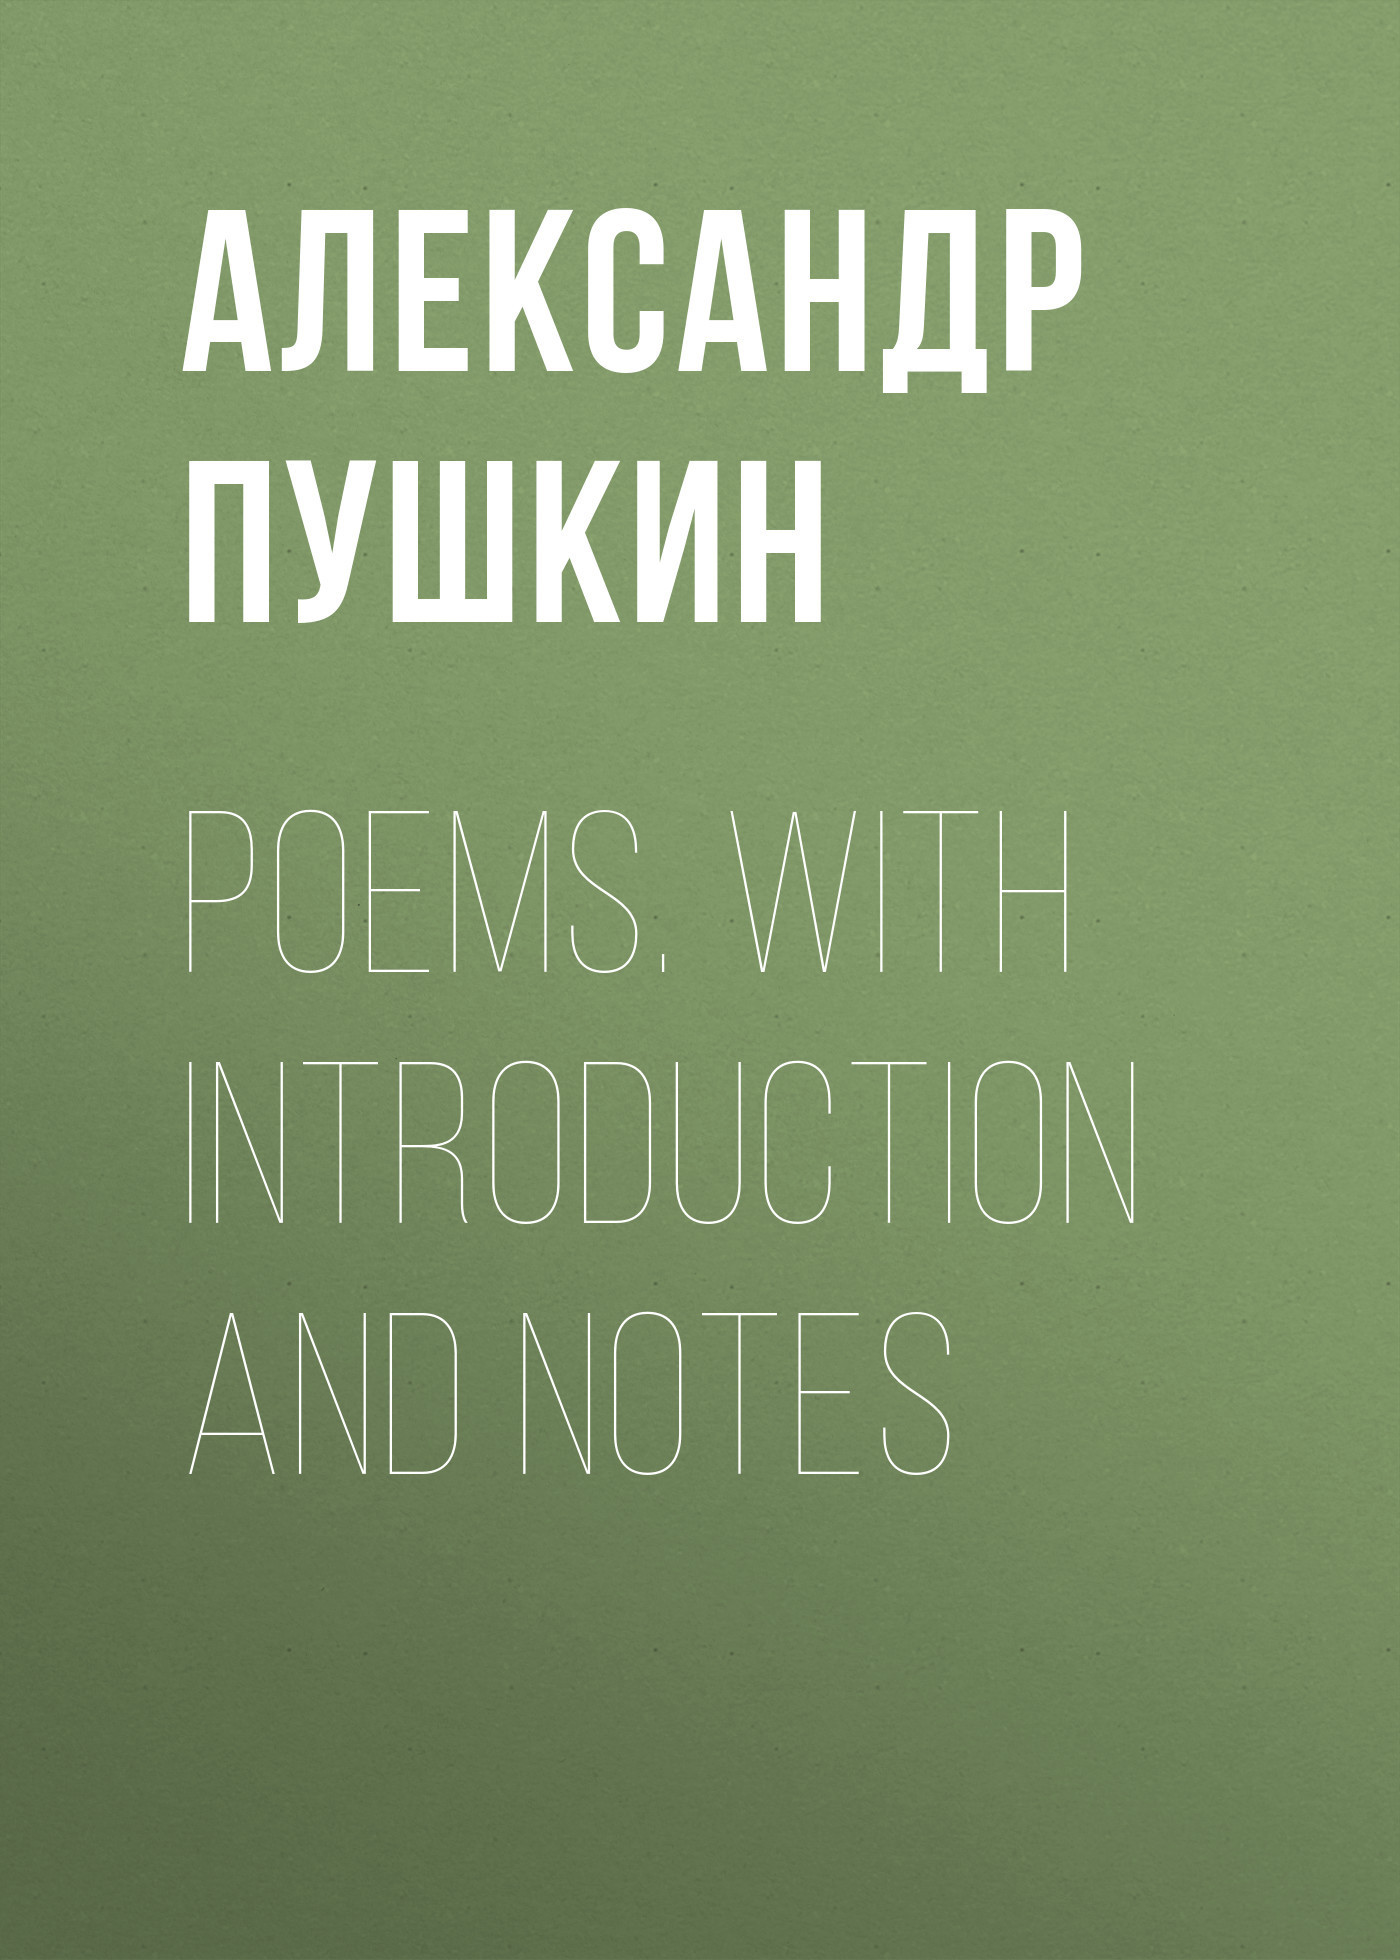 Александр Пушкин Poems. With Introduction and Notes janouch conversations with kafka – notes and reminiscenes cobe